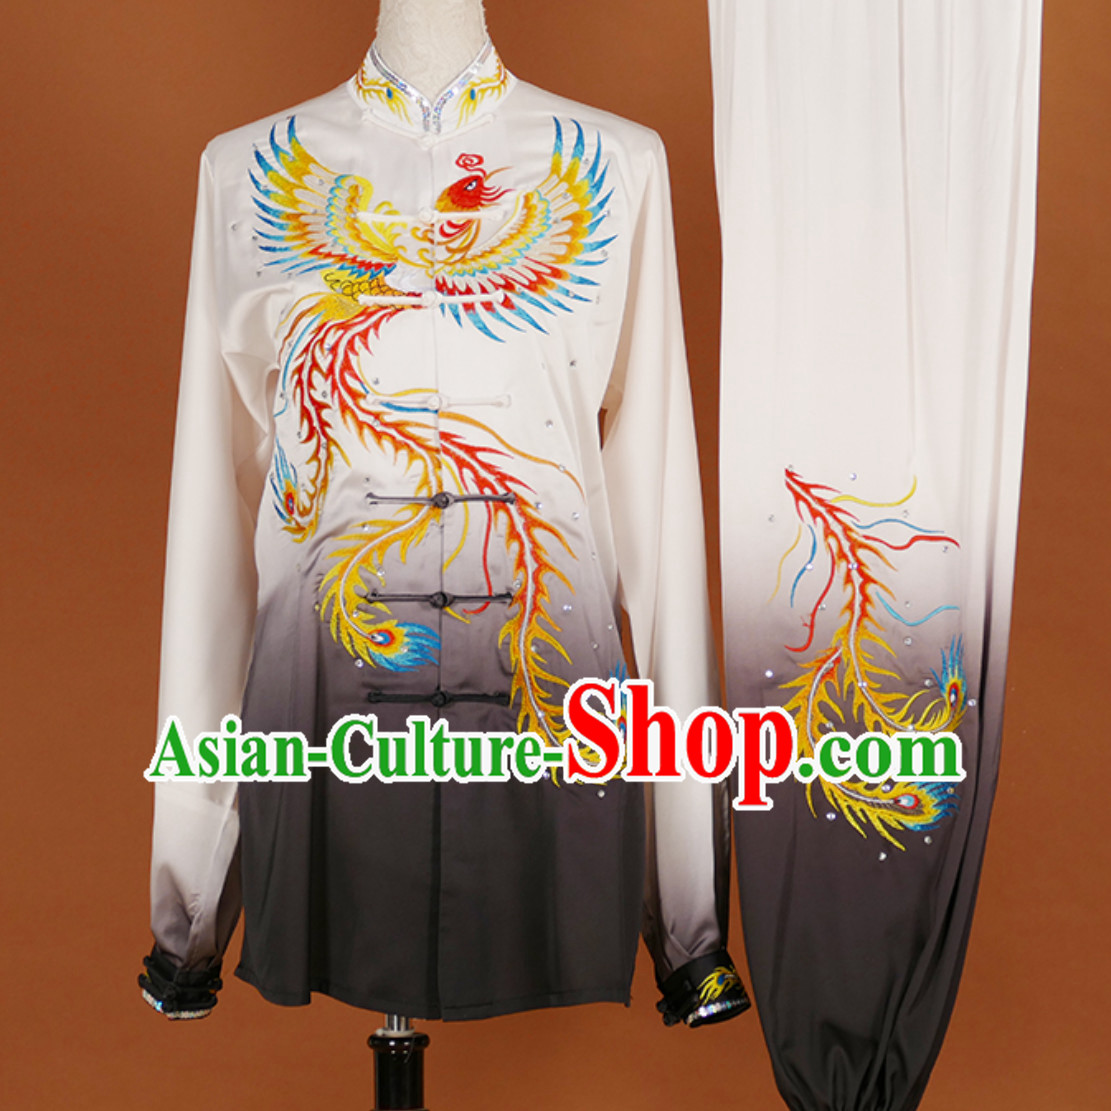 Black White Classical Giant Phoenix Embroidered Long Sleeves Martial Arts Clothing Kung Fu Dress Wushu Suits Stage Performance Championship Competition Dresses Full Set for Girls Women